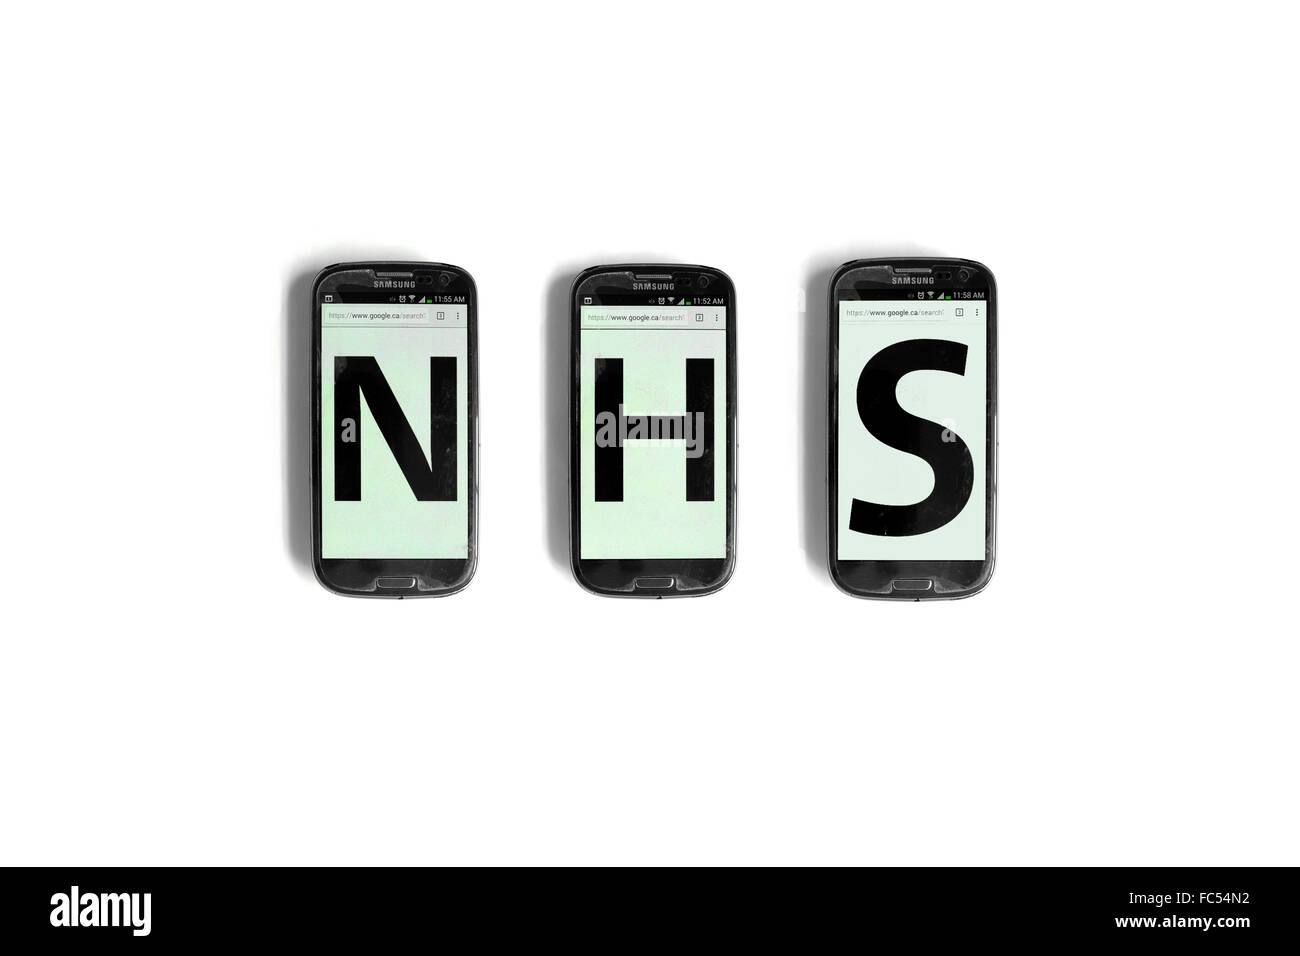 NHS written on the screen of smartphones photographed against a white background. - Stock Image